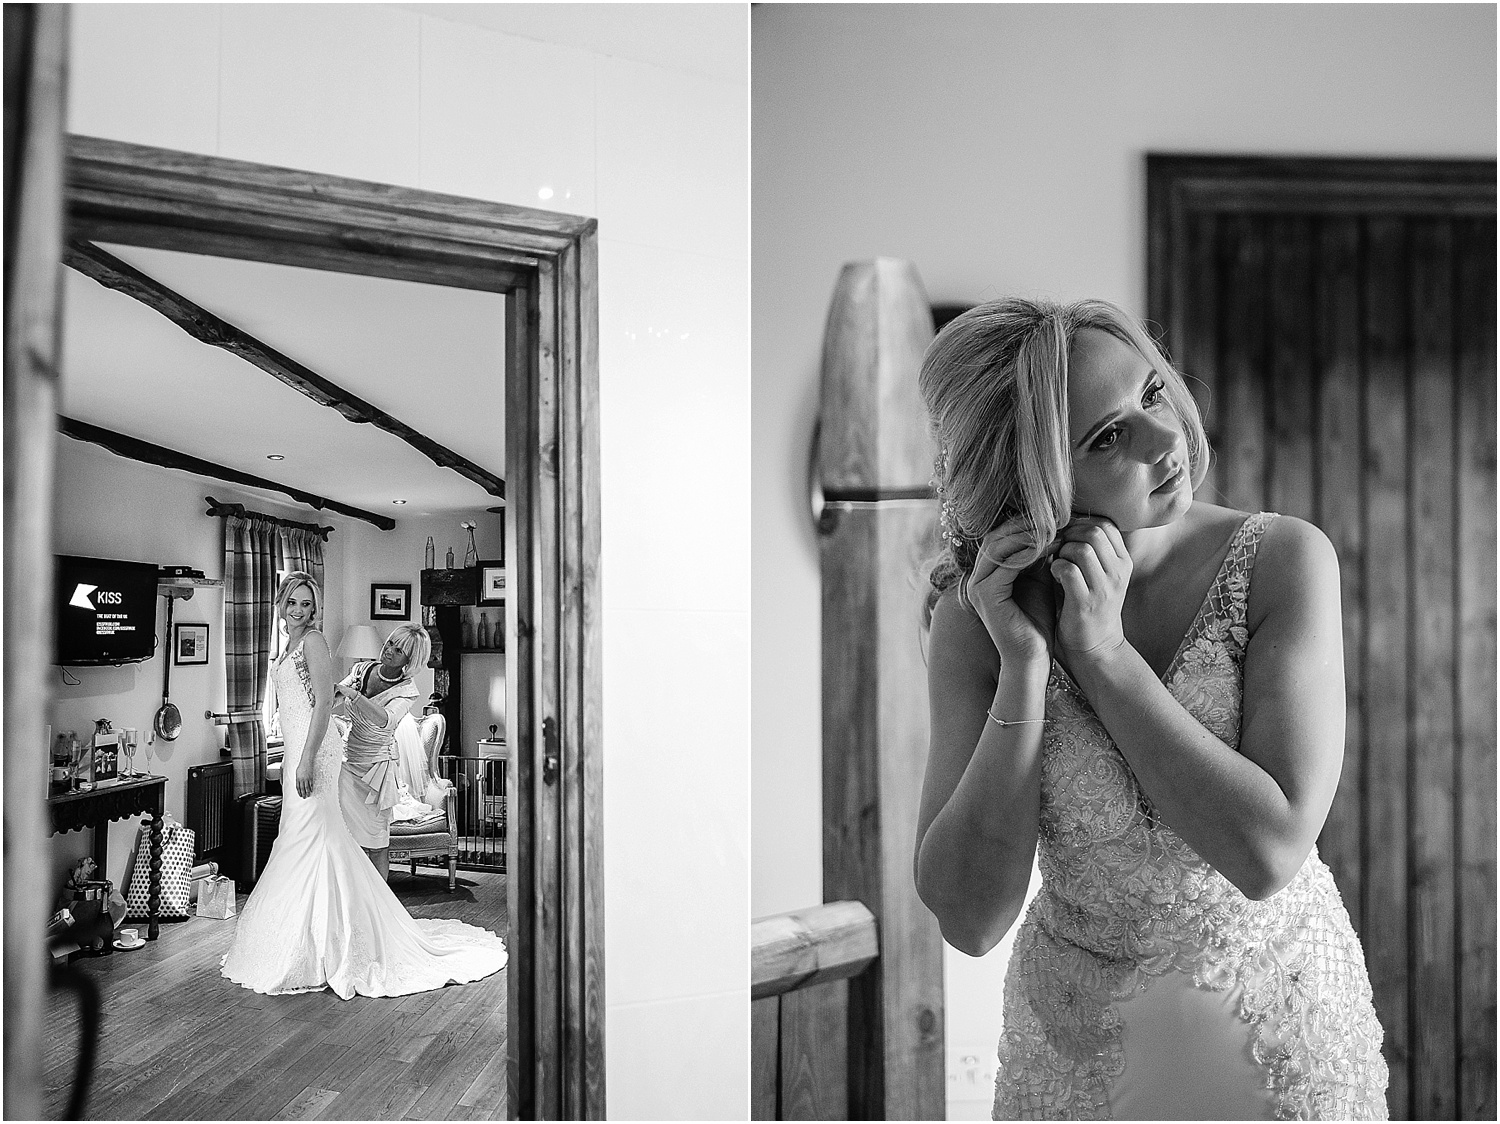 South Causey Inn wedding photography by 2tone Photography 011.jpg